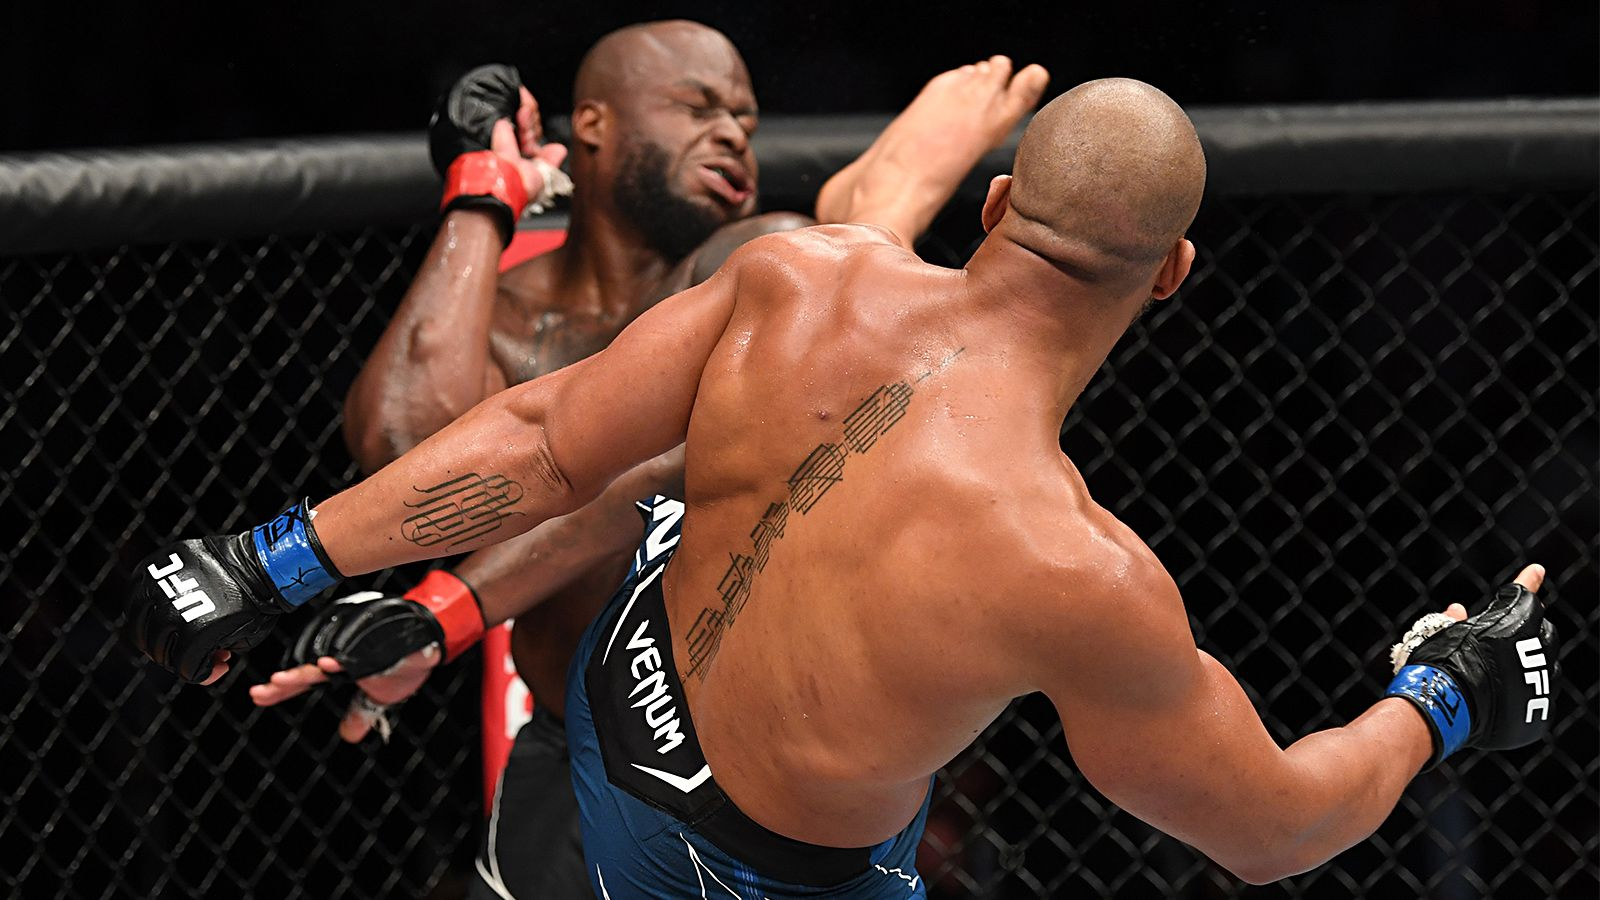 """MMA News: Cyril Gane: """"I expected that I could finish Lewis in this manner"""". Video interview"""